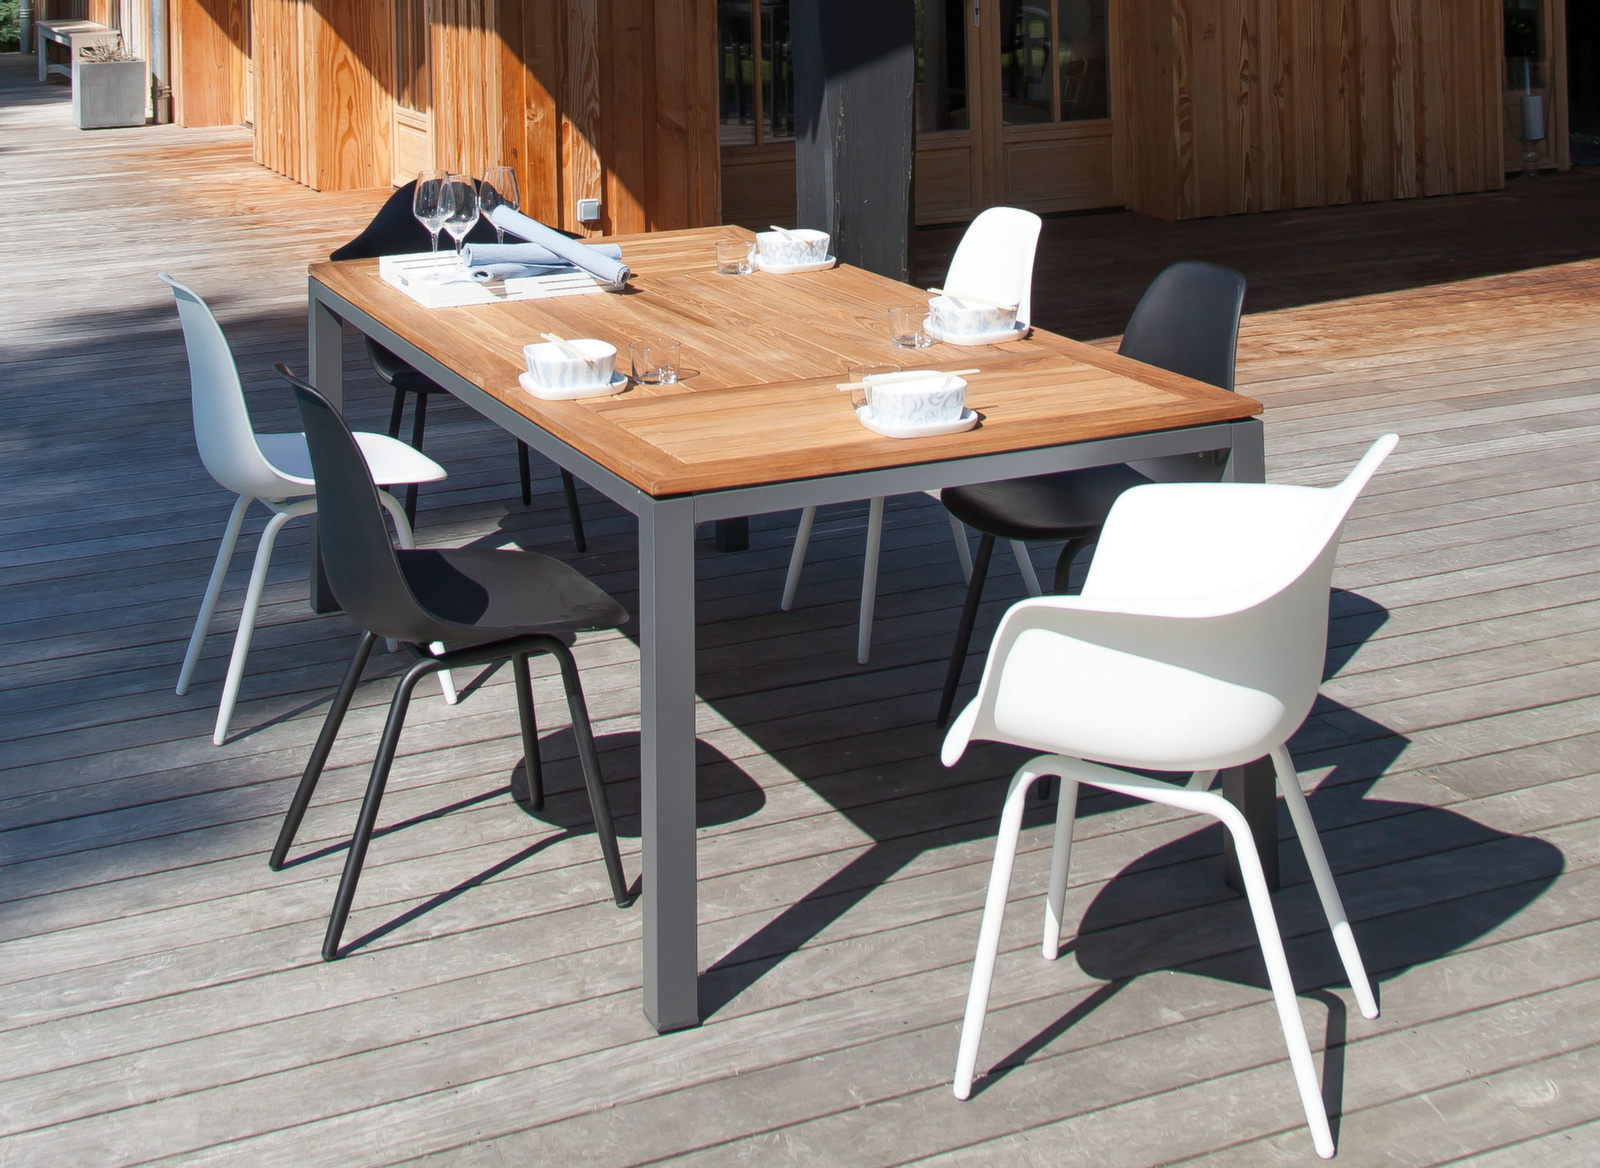 Table Tempo 180 cm, Plateau teck - Tables fixes - Meuble de jardin ...